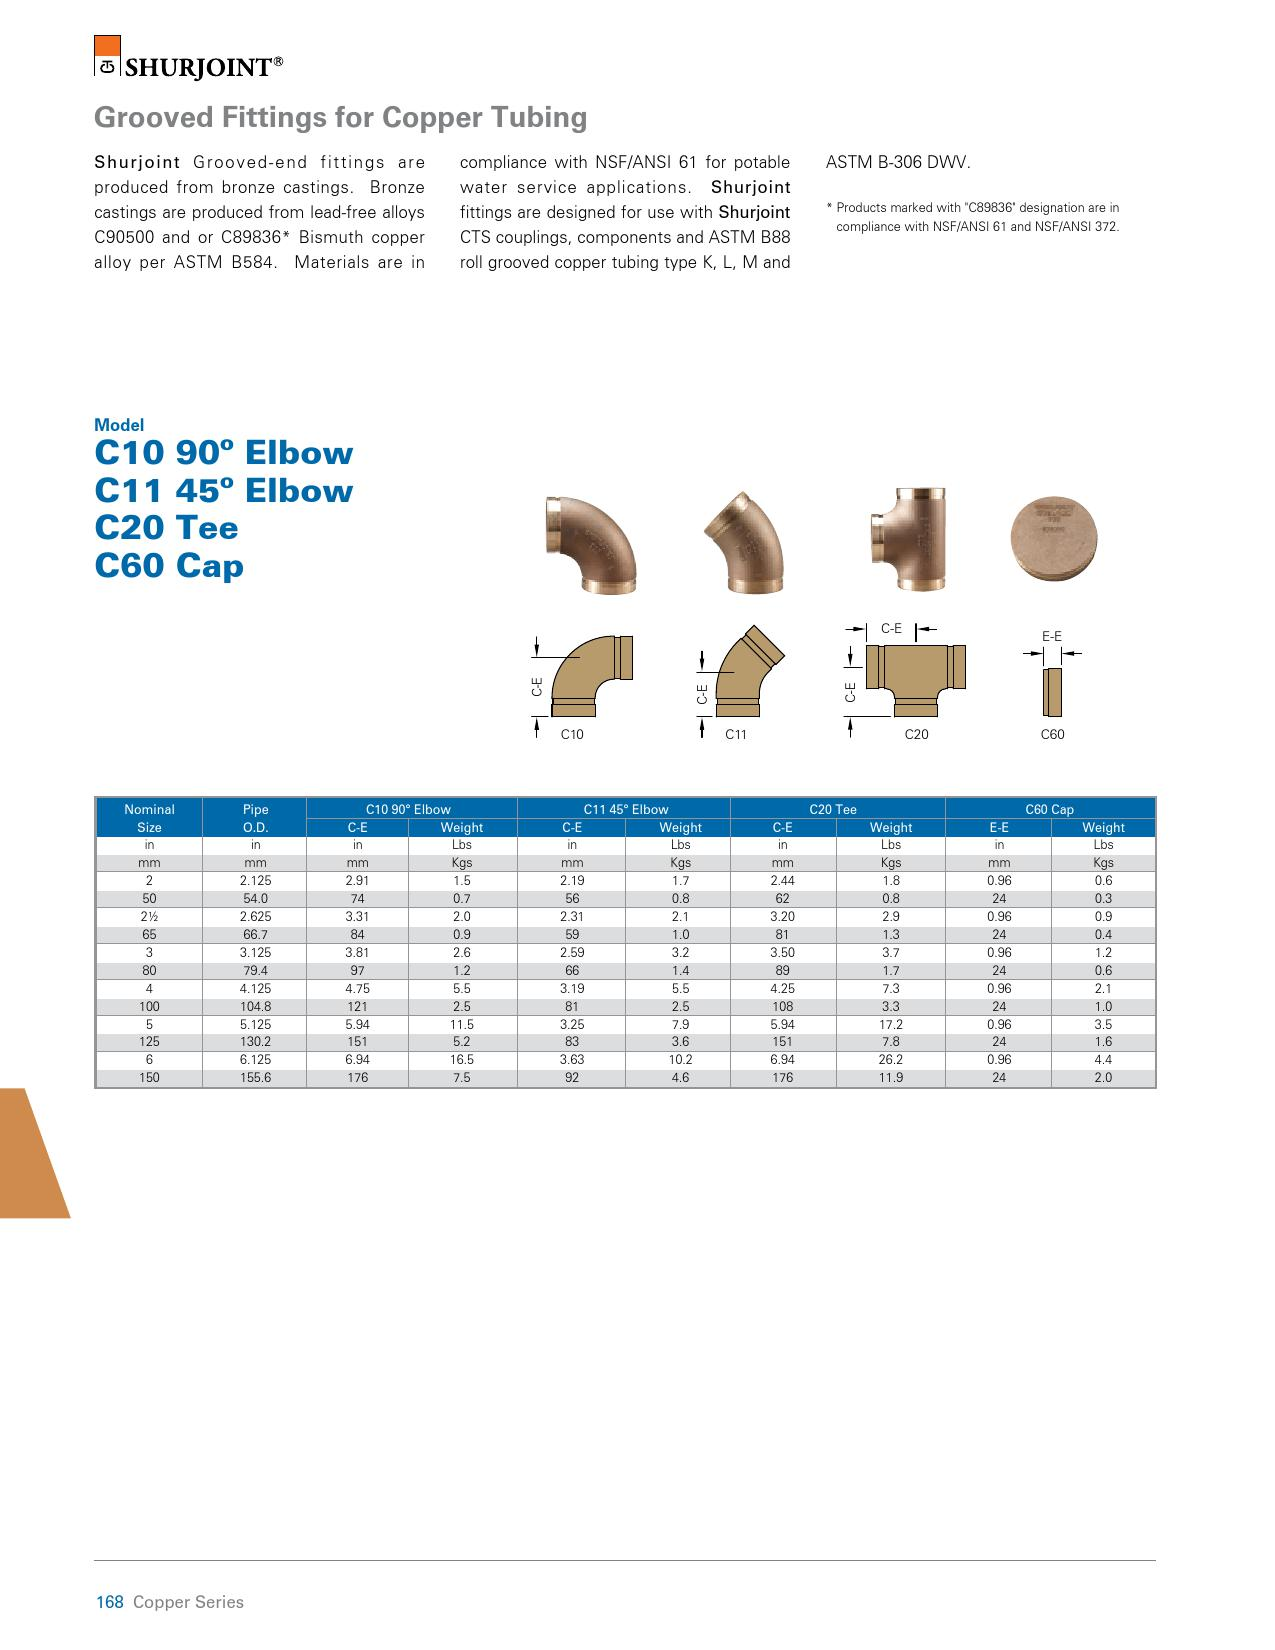 Copper Series, Grooved Fittings for Copper Tubing